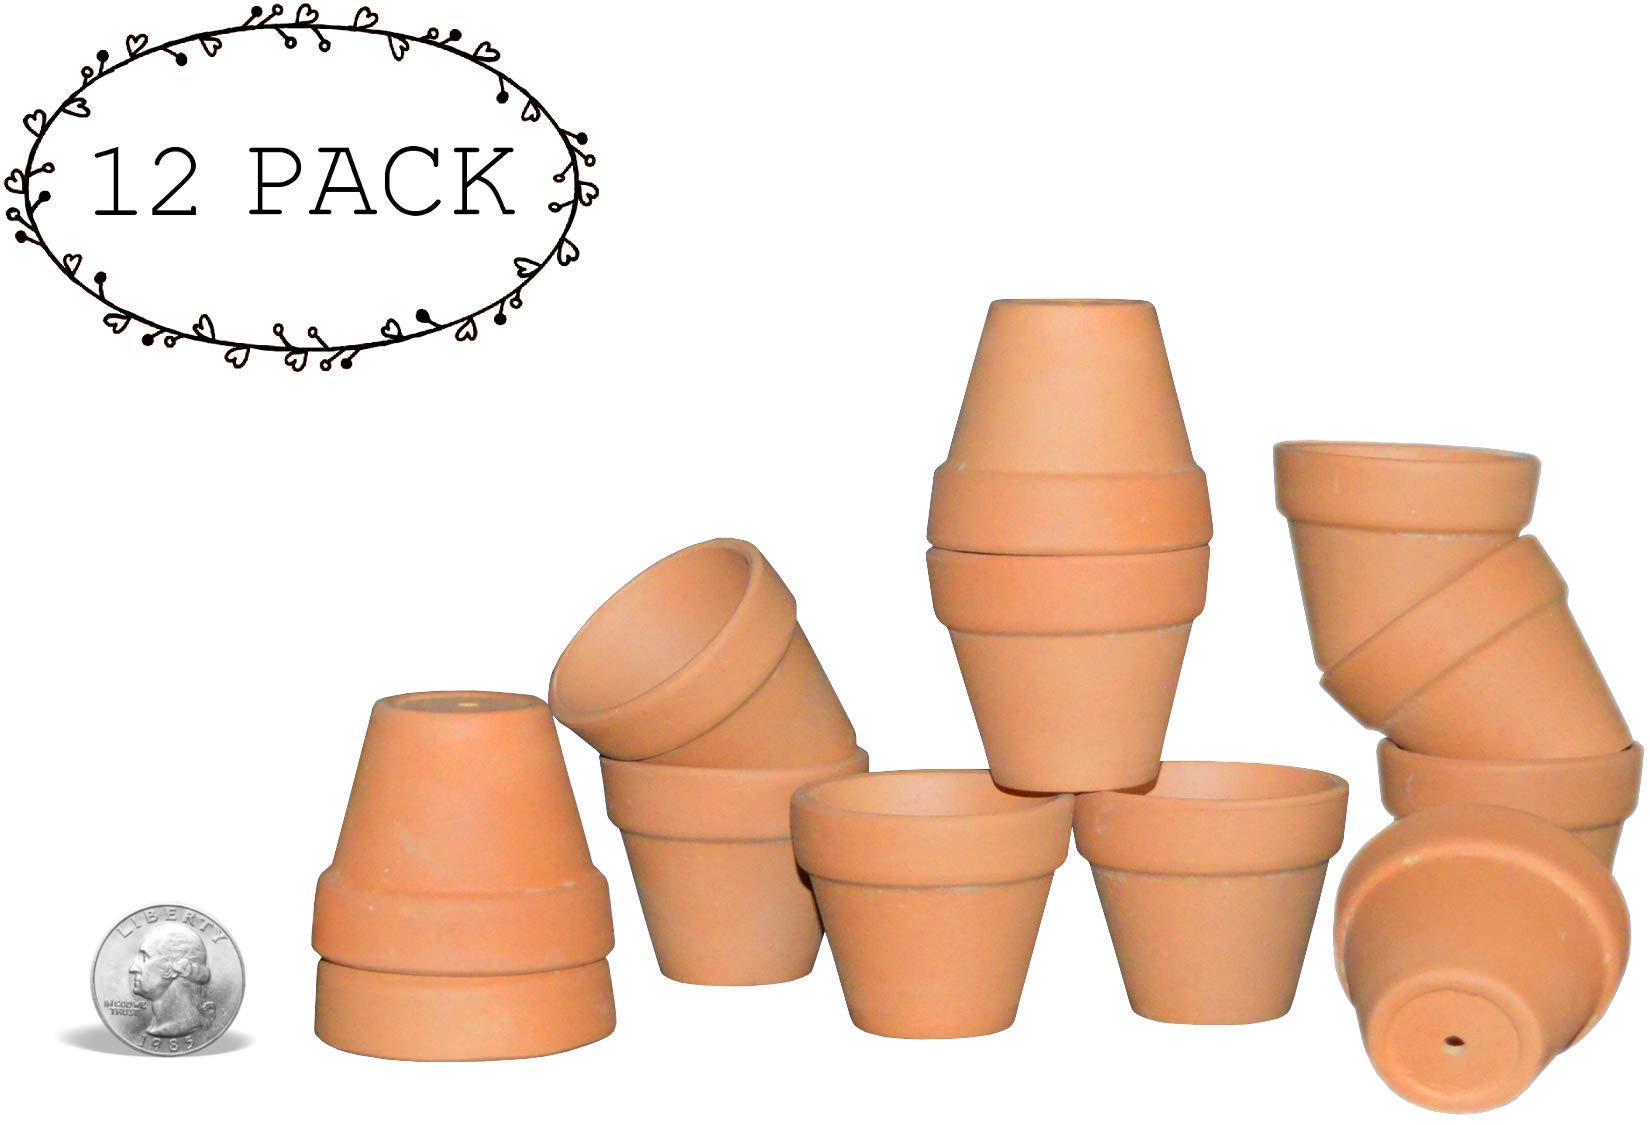 My Urban Crafts Small Terra Cotta Pots - Mini Clay Flower Pots - Great For Succulent & Cactus Nursery Planter, DIY Craft Projects, Wedding and Party Favors - 1 x 1.5 Inches (Set of 12)